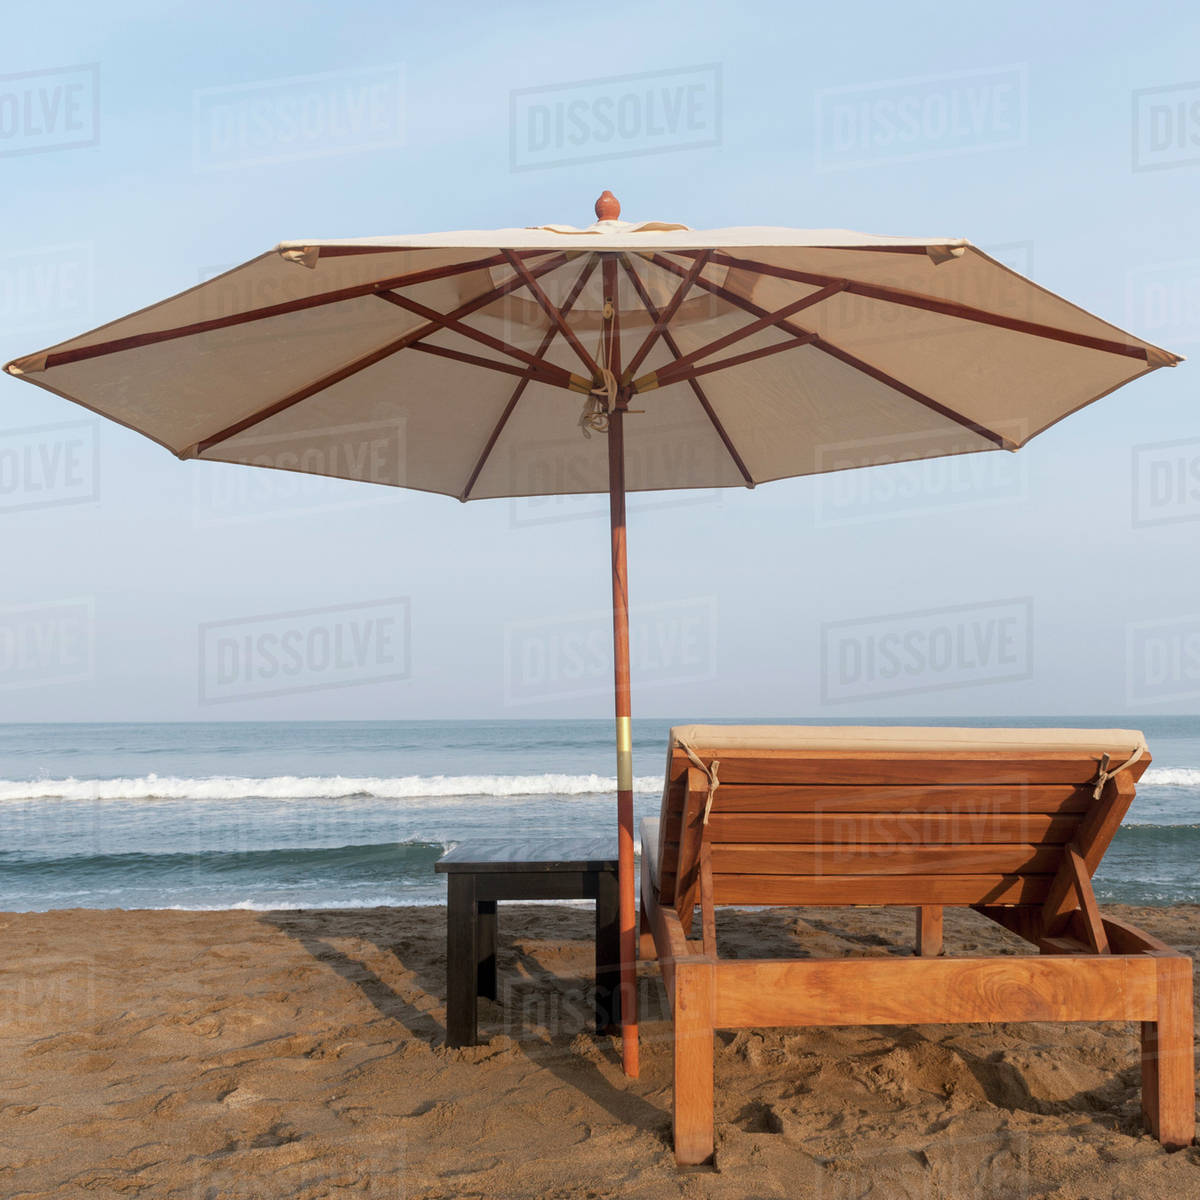 Chair With Umbrella A Lounge Chair And Umbrella On The Beach At The Water S Edge Sayulita Mexico Stock Photo